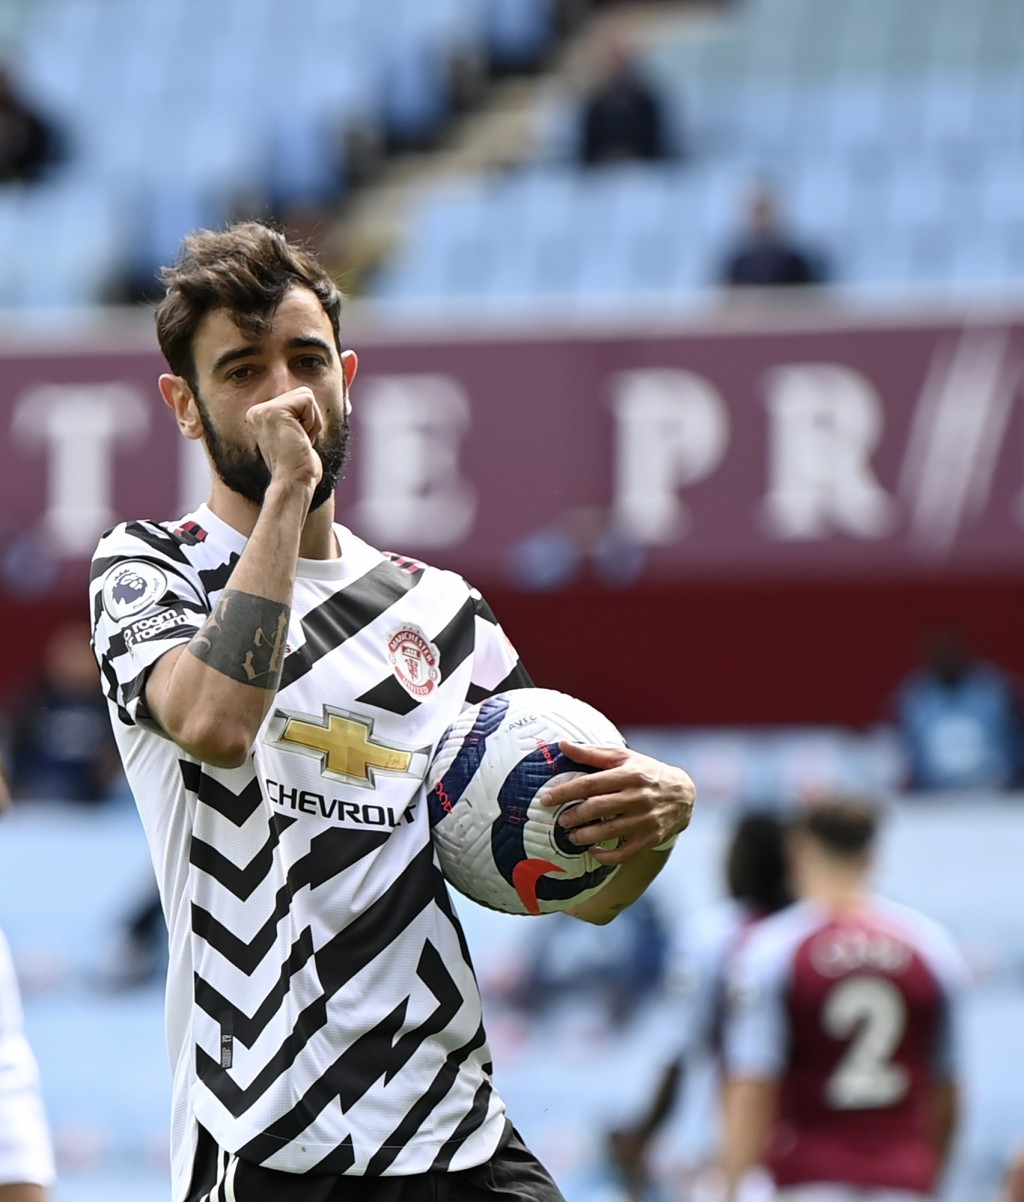 Manchester United's Bruno Fernandes celebrates after scoring his side's opening goal from penalty during the English Premier League soccer match betwe...